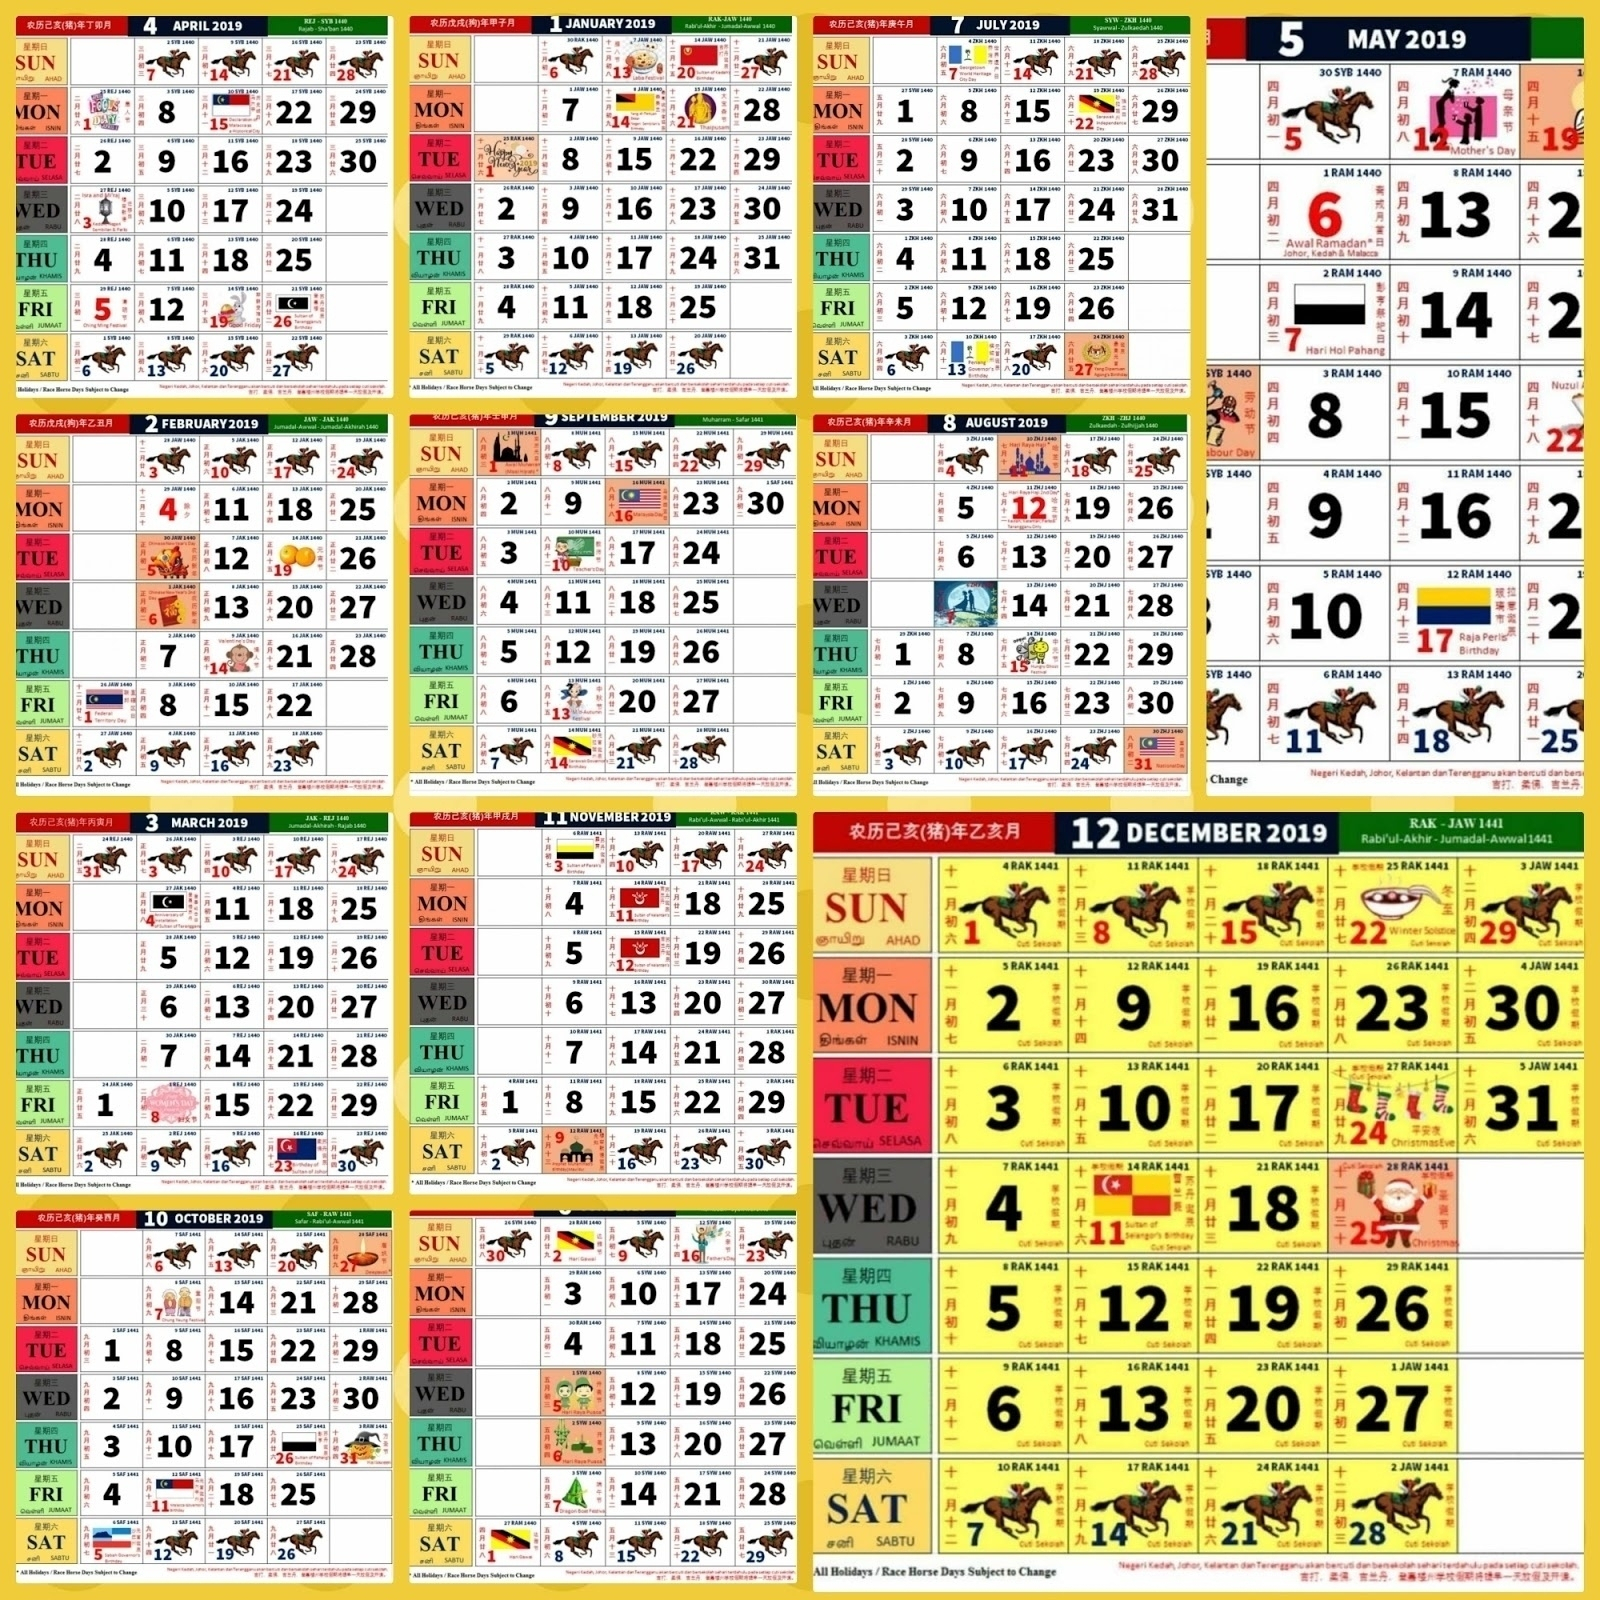 Kalendar Kuda April 2020 | Calendar Template Information within Calender Kuda 2020